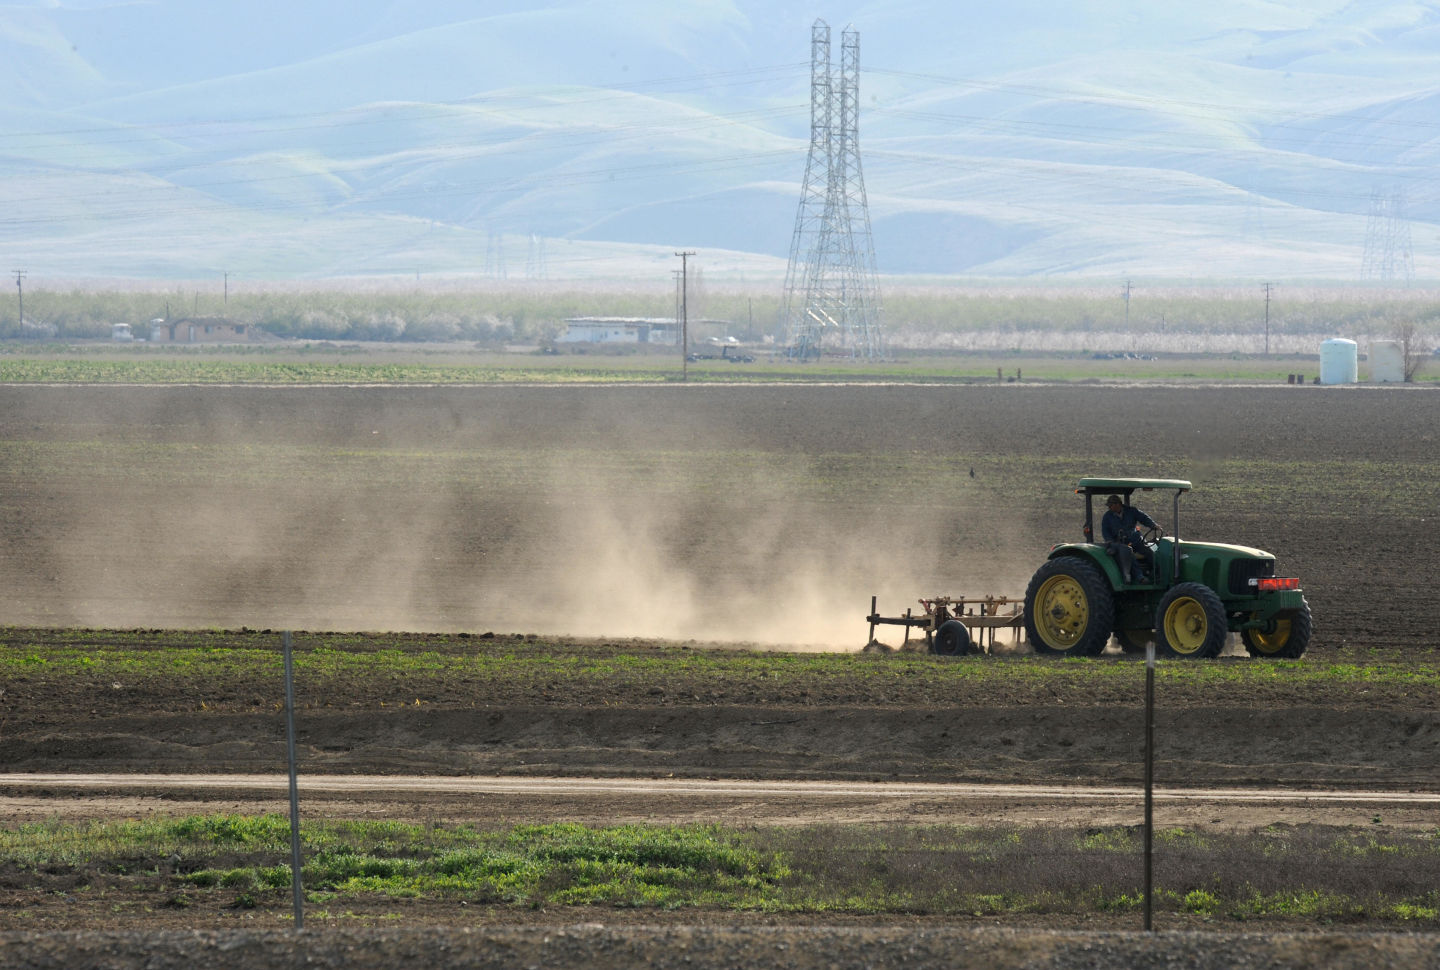 A farmer plows a field in Mendota, California in the San Joaquin Valley. Due to drought conditions many farmers do not have enough water to plant their fields.